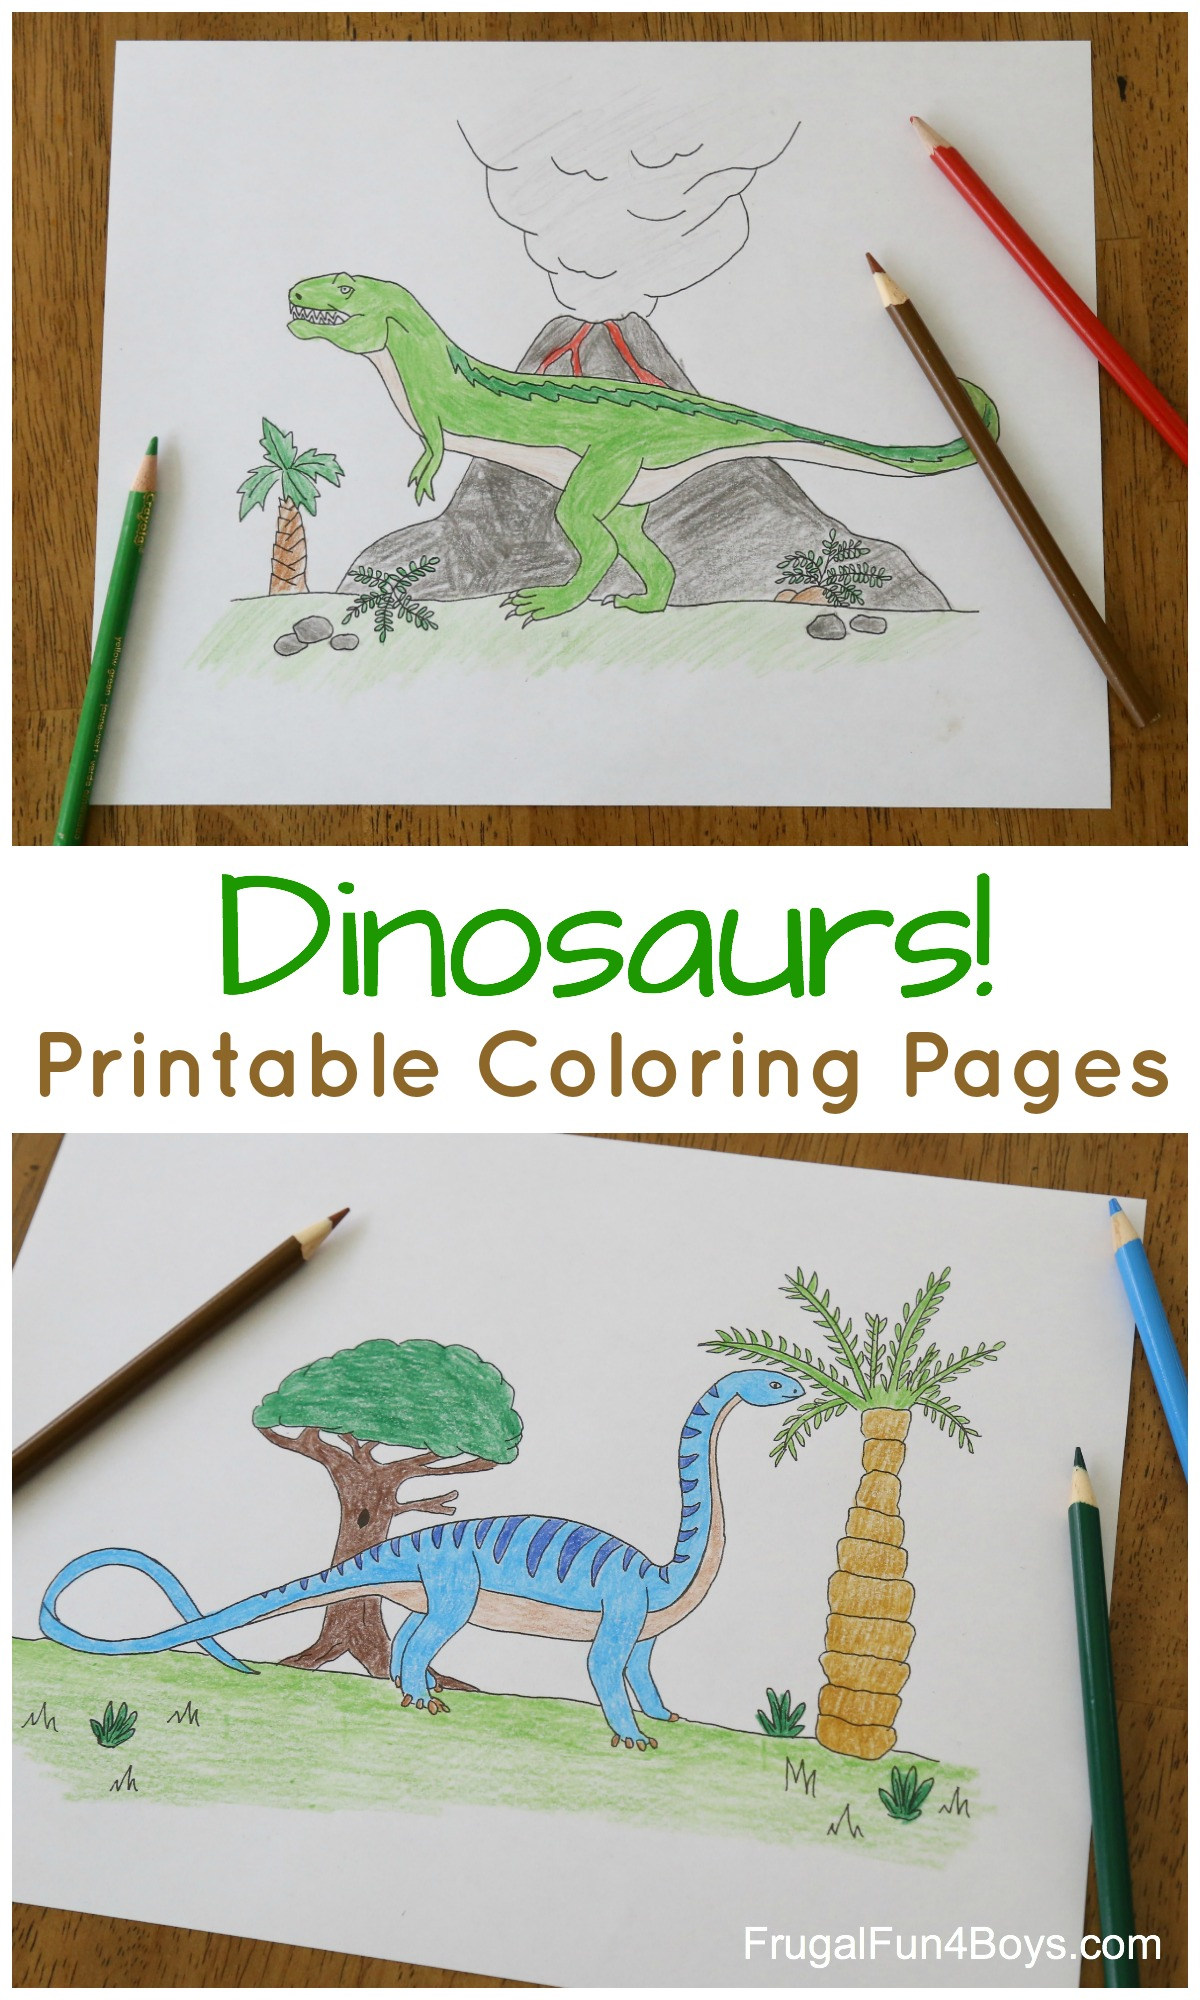 Printable Dinosaur Coloring Pages For Kids Frugal Fun For Boys And Girls